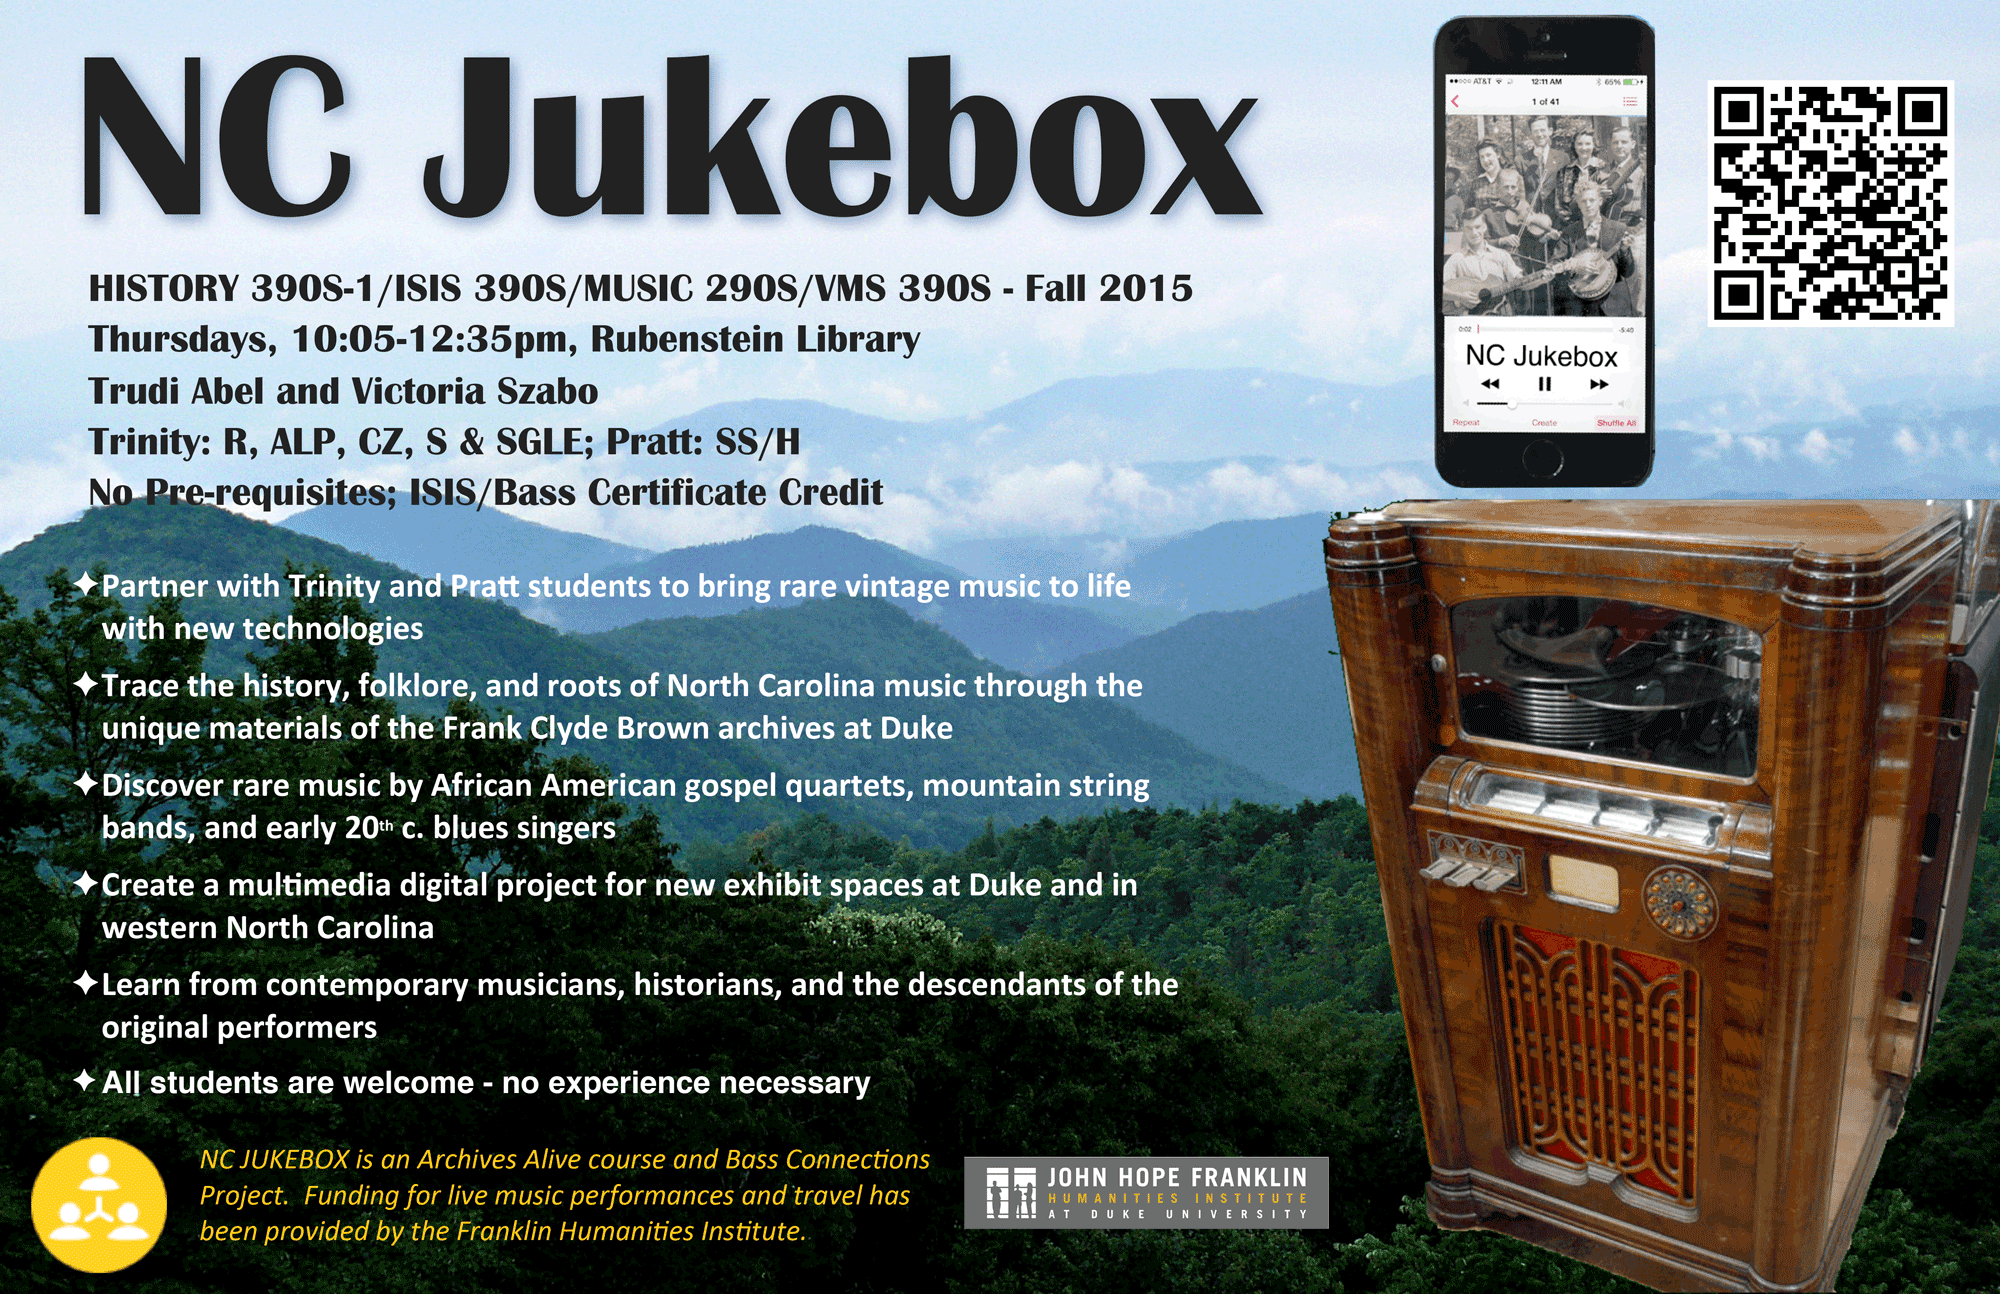 Digital History/Humanties: NC Jukebox